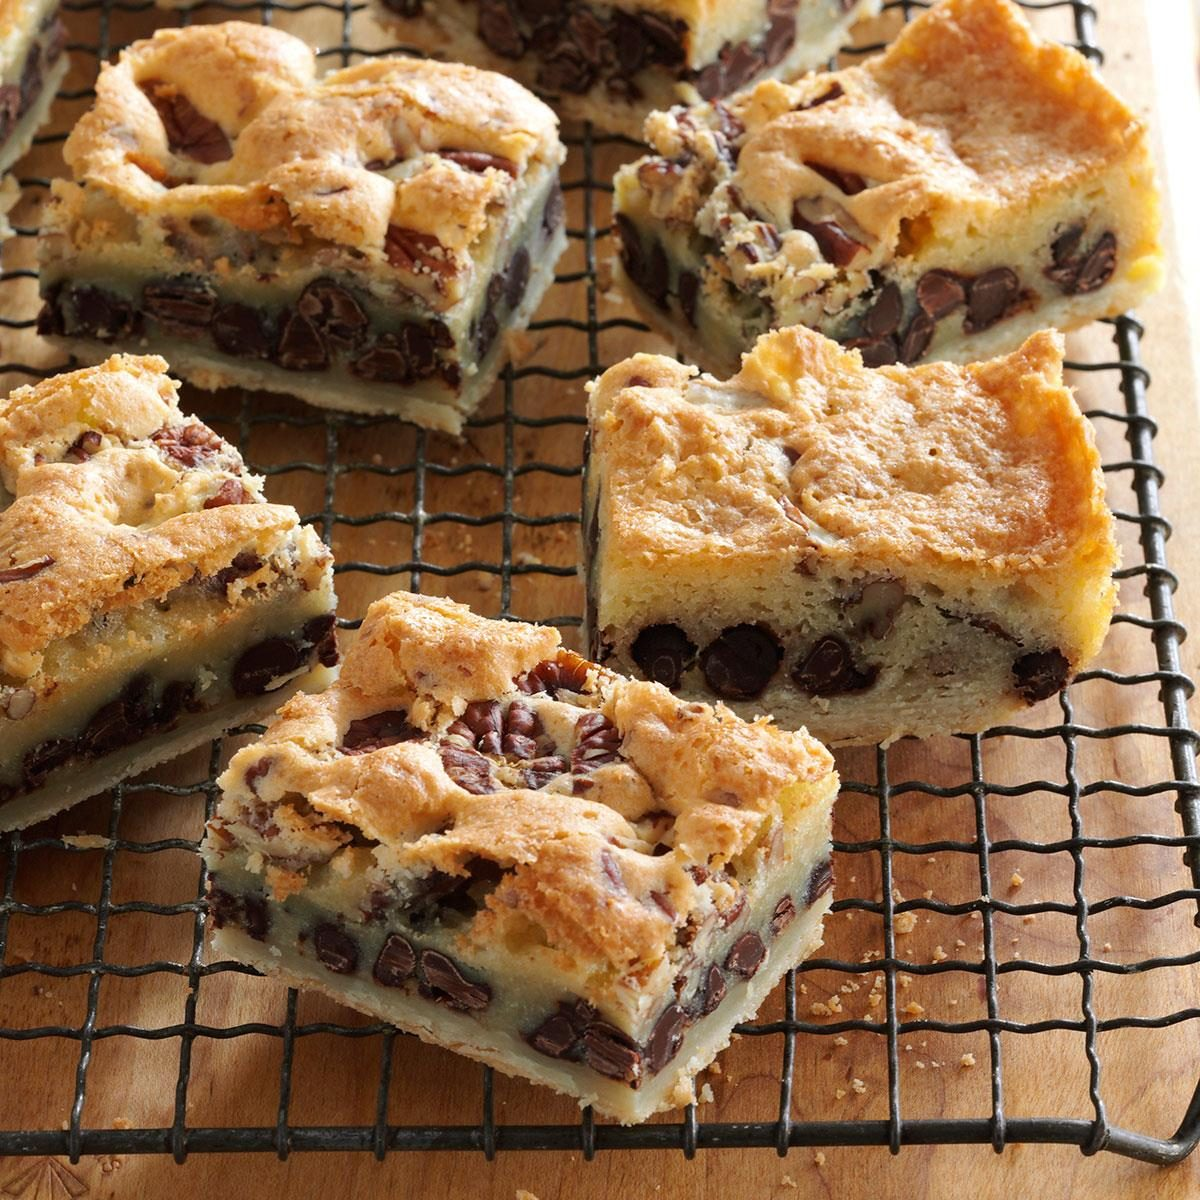 August 20: National Chocolate Pecan Pie Day